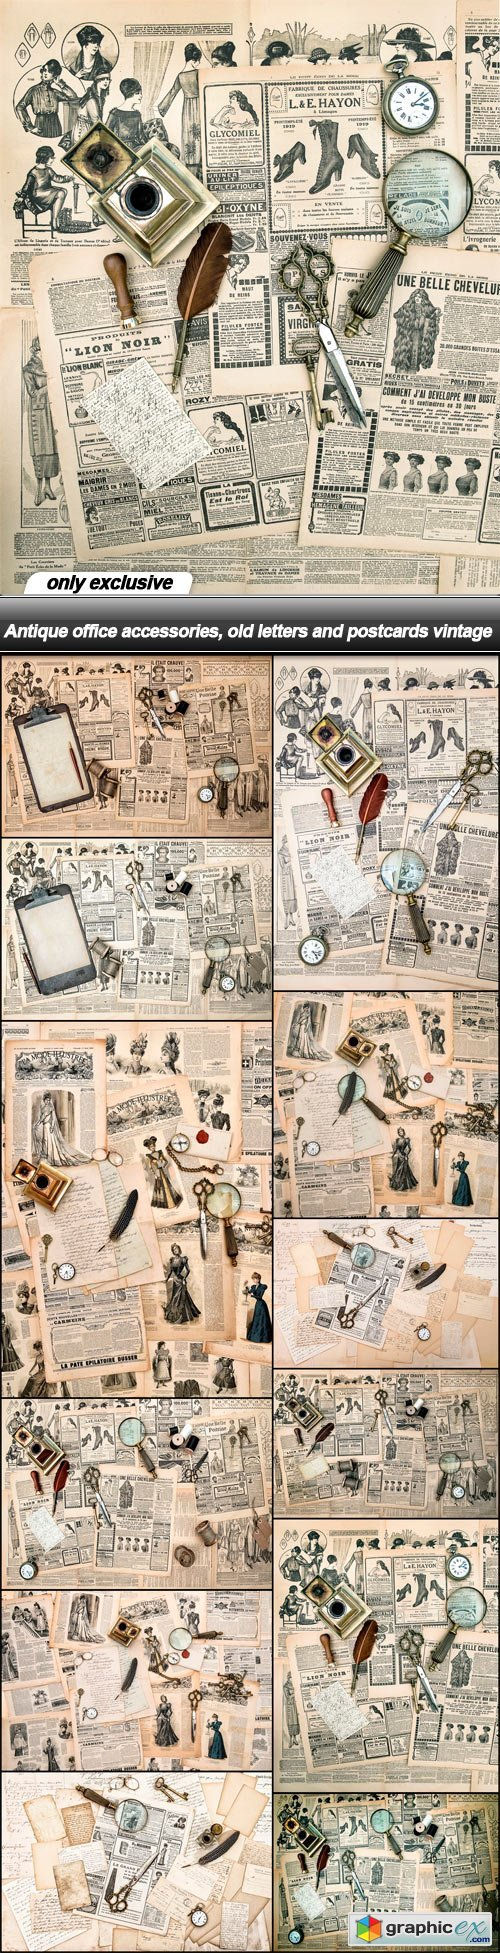 Antique office accessories, old letters and postcards vintage - 13 UHQ JPEG